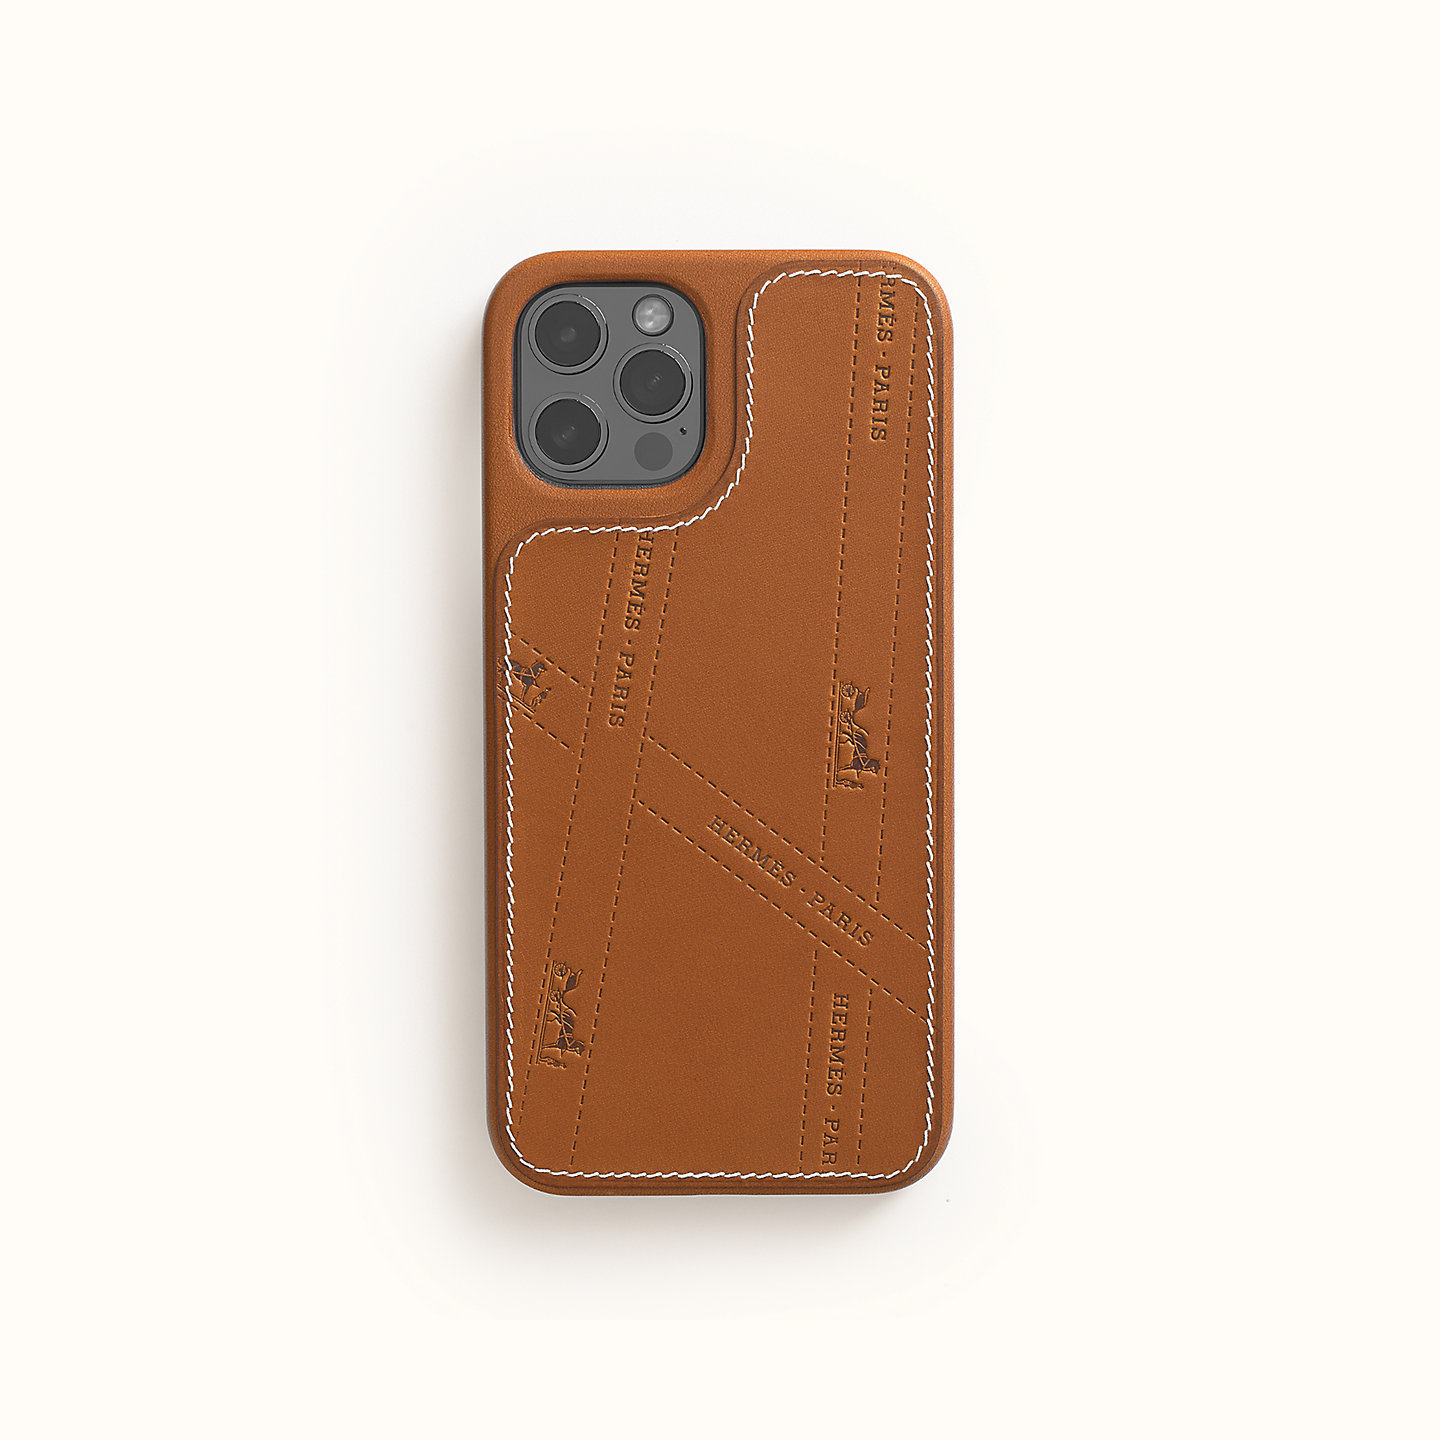 HERMES iPhone12/12 Pro ボルデュック柄 本革 スマホケース (HERMES/iPhone・スマホケース) H0007441A34